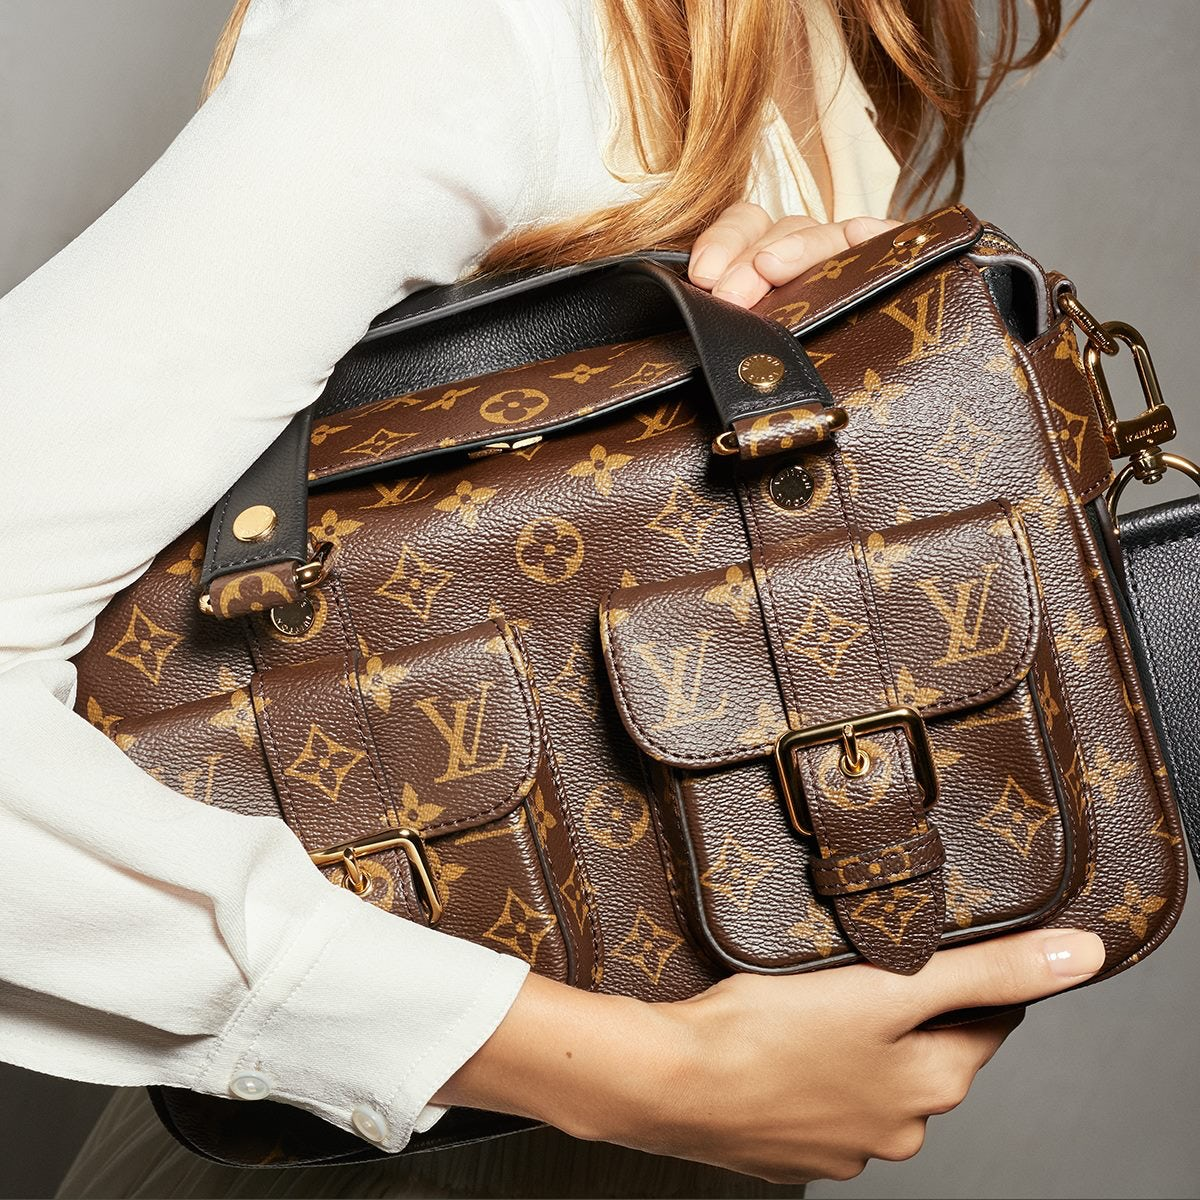 Louis Vuitton Turns to Facebook Bot to Chat Up Customers Online